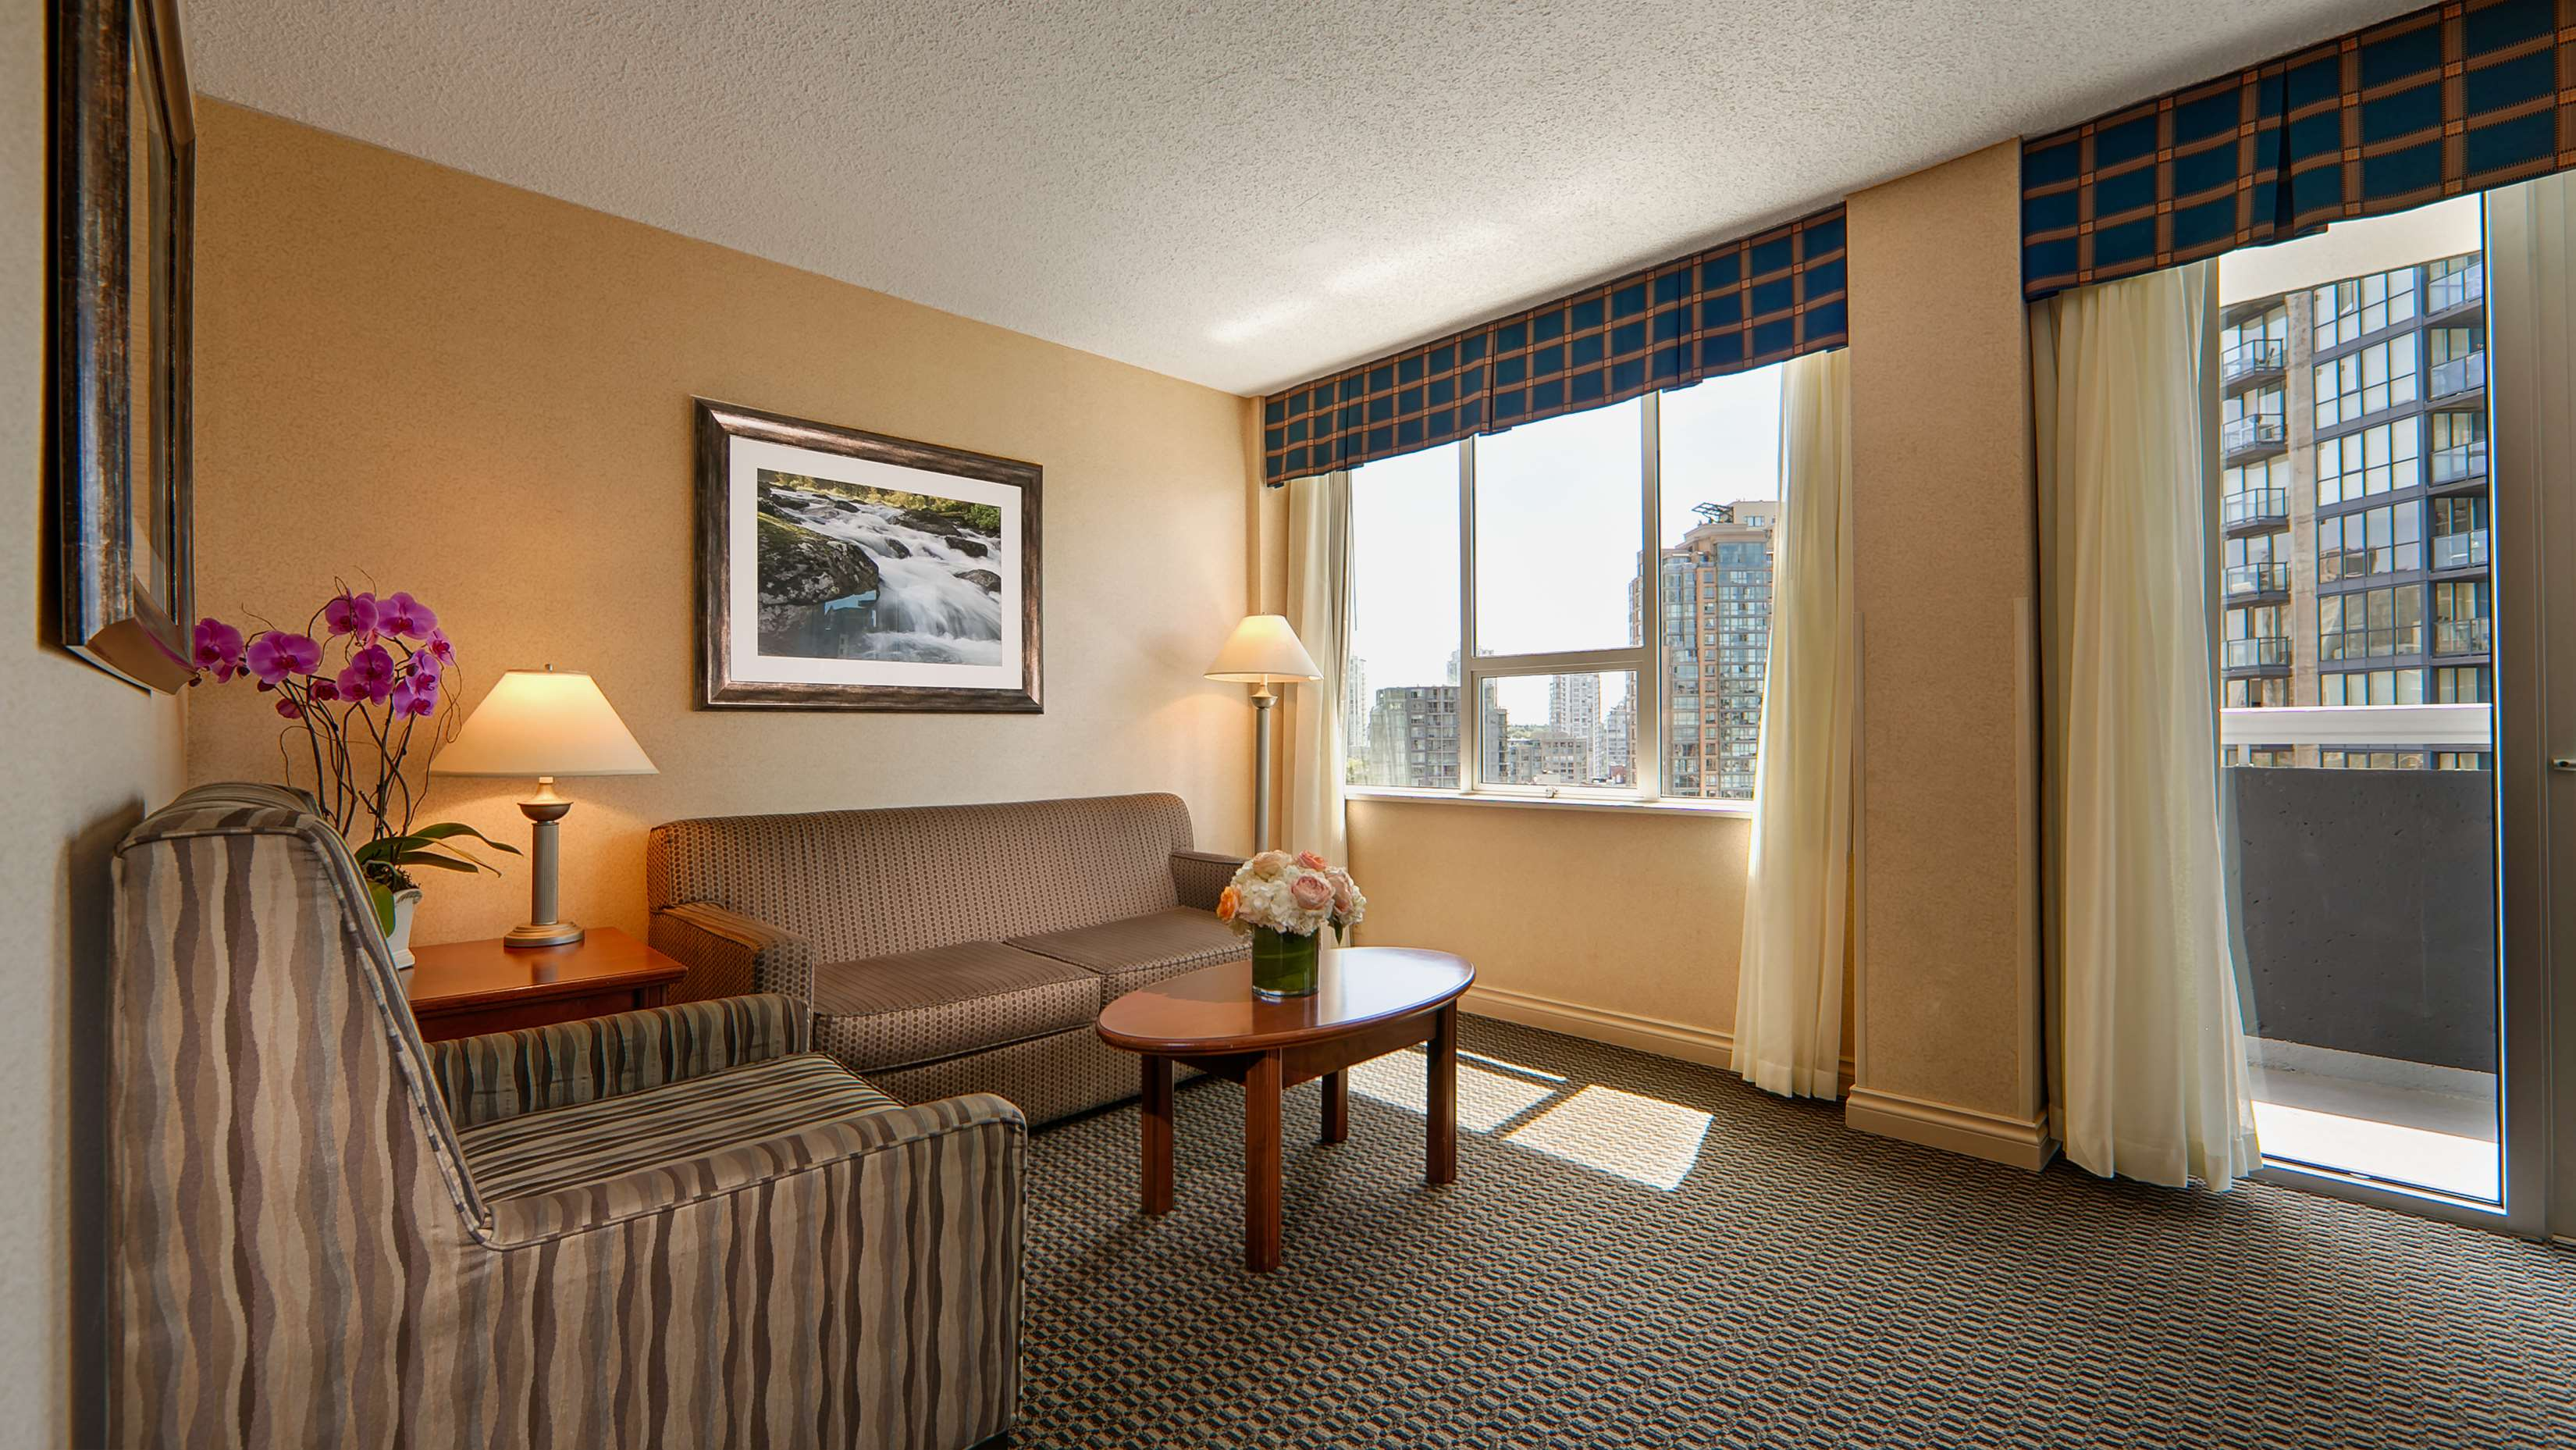 Best Western Plus Chateau Granville Hotel & Suites & Conference Ctr. in Vancouver: Suite Living Room